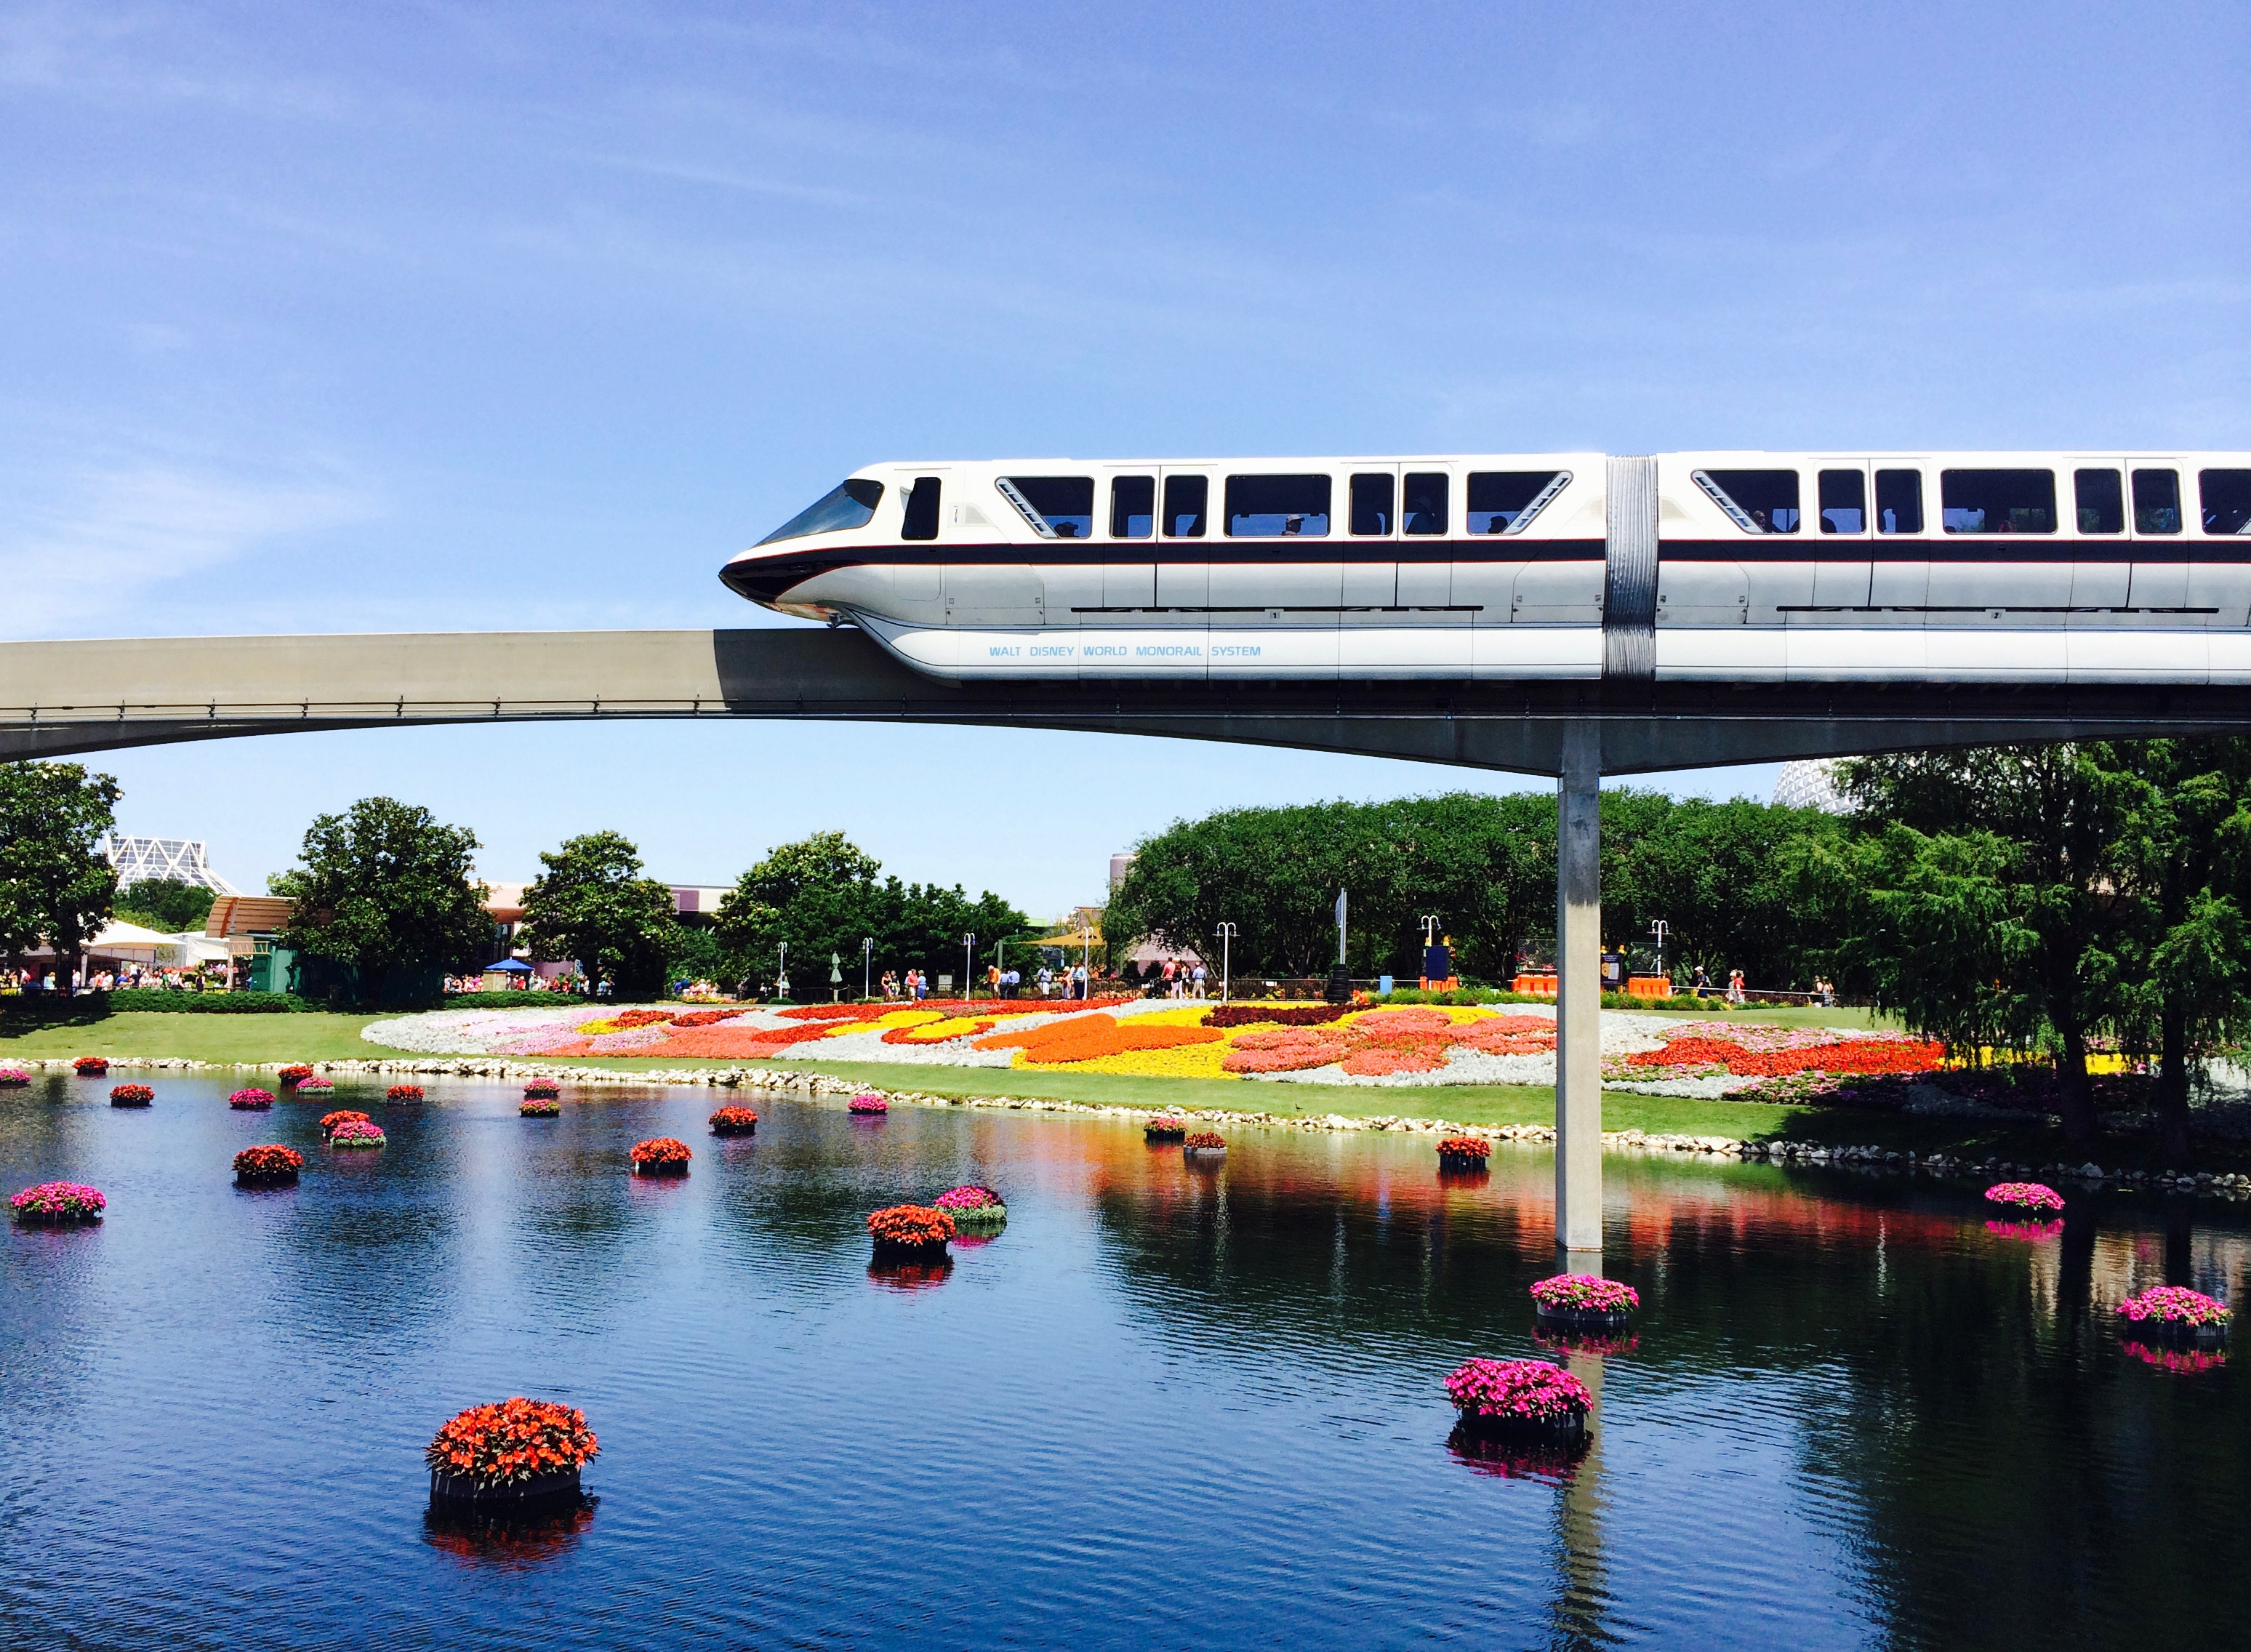 Guests who stay at a Walt Disney World resort benefit from free transportation such as the Monorail